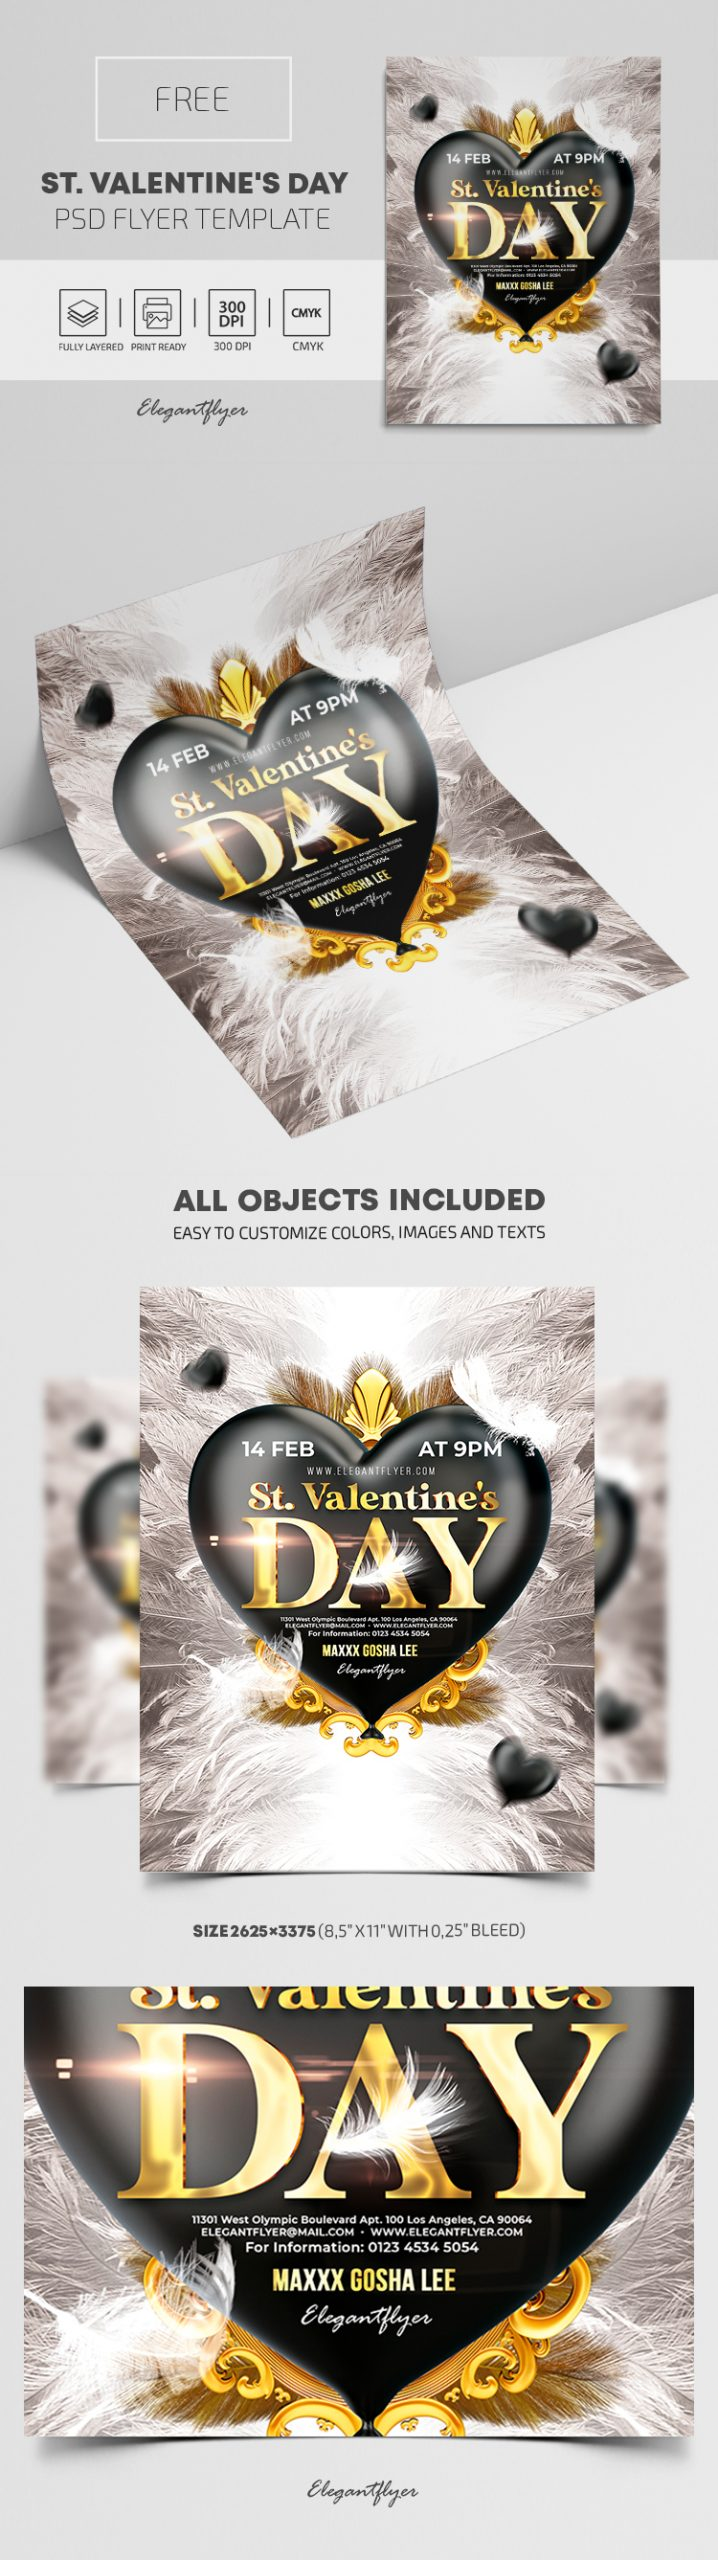 St. Valentine's Day – Free PSD Flyer Template